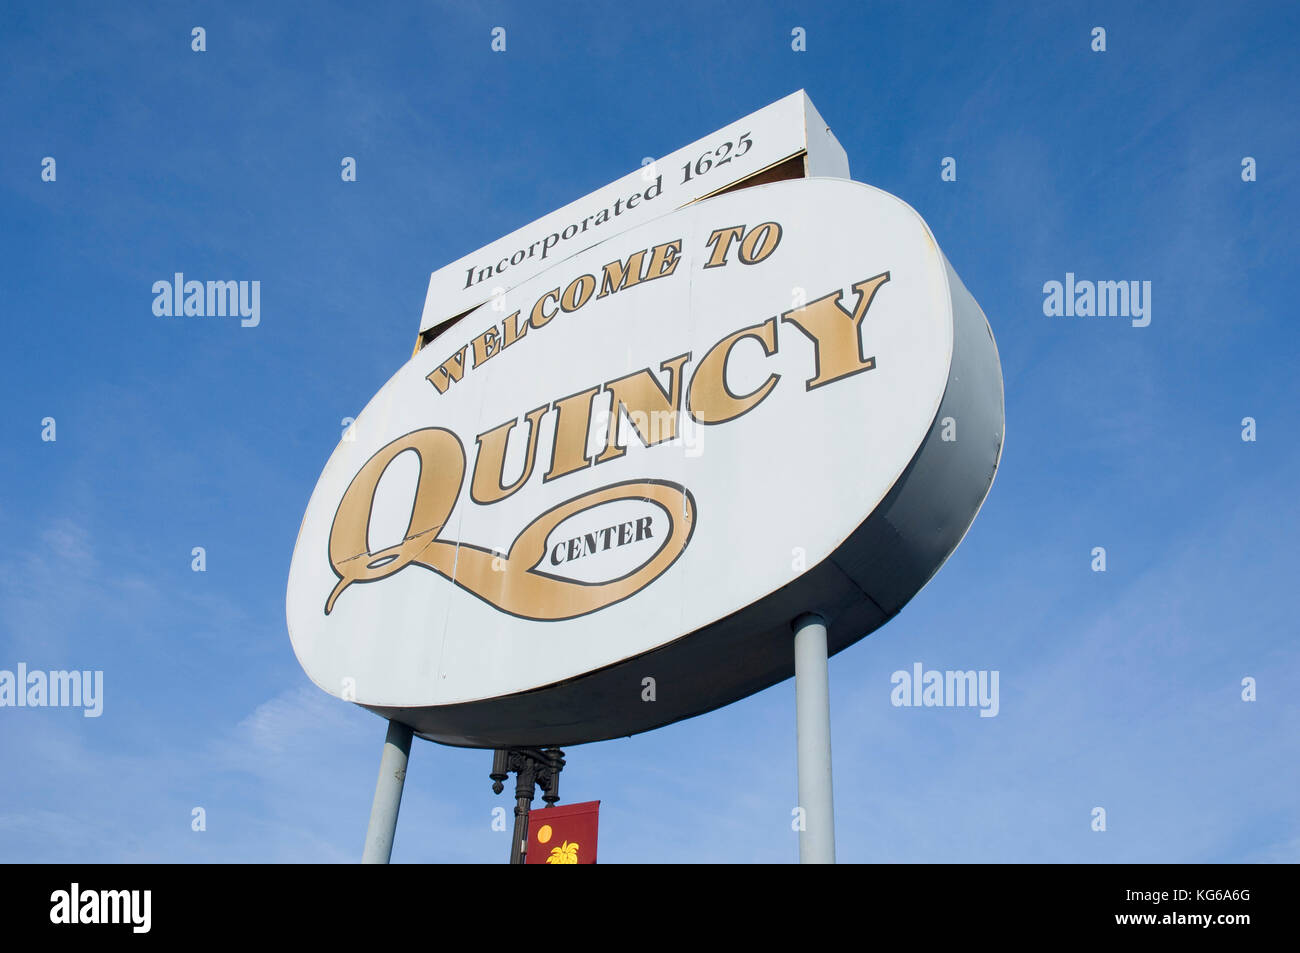 Welcome to Quincy Center sign Stock Photo